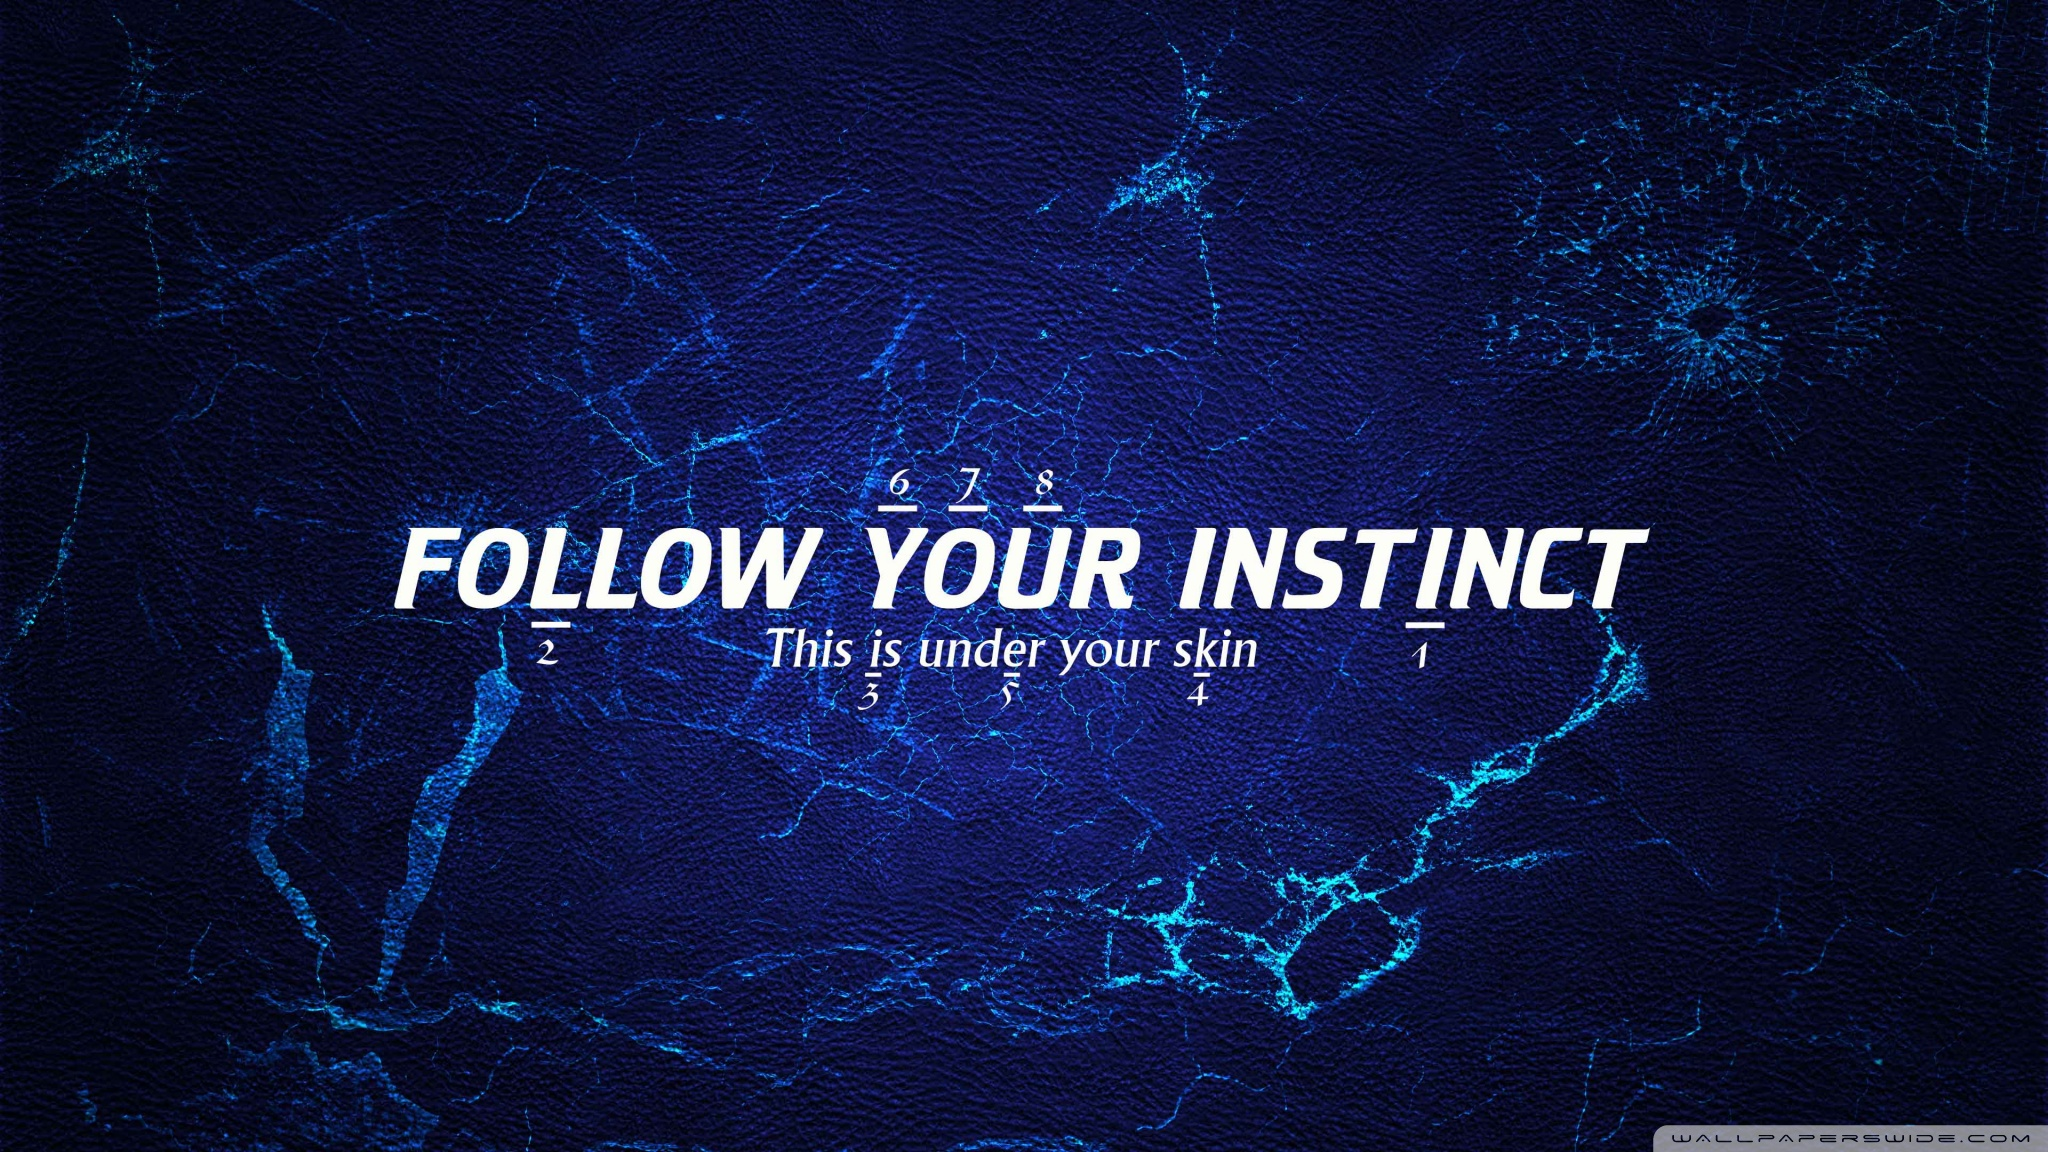 Instinct Wallpaper 20481152 164970 HD Wallpaper Res 2048x1152 2048x1152